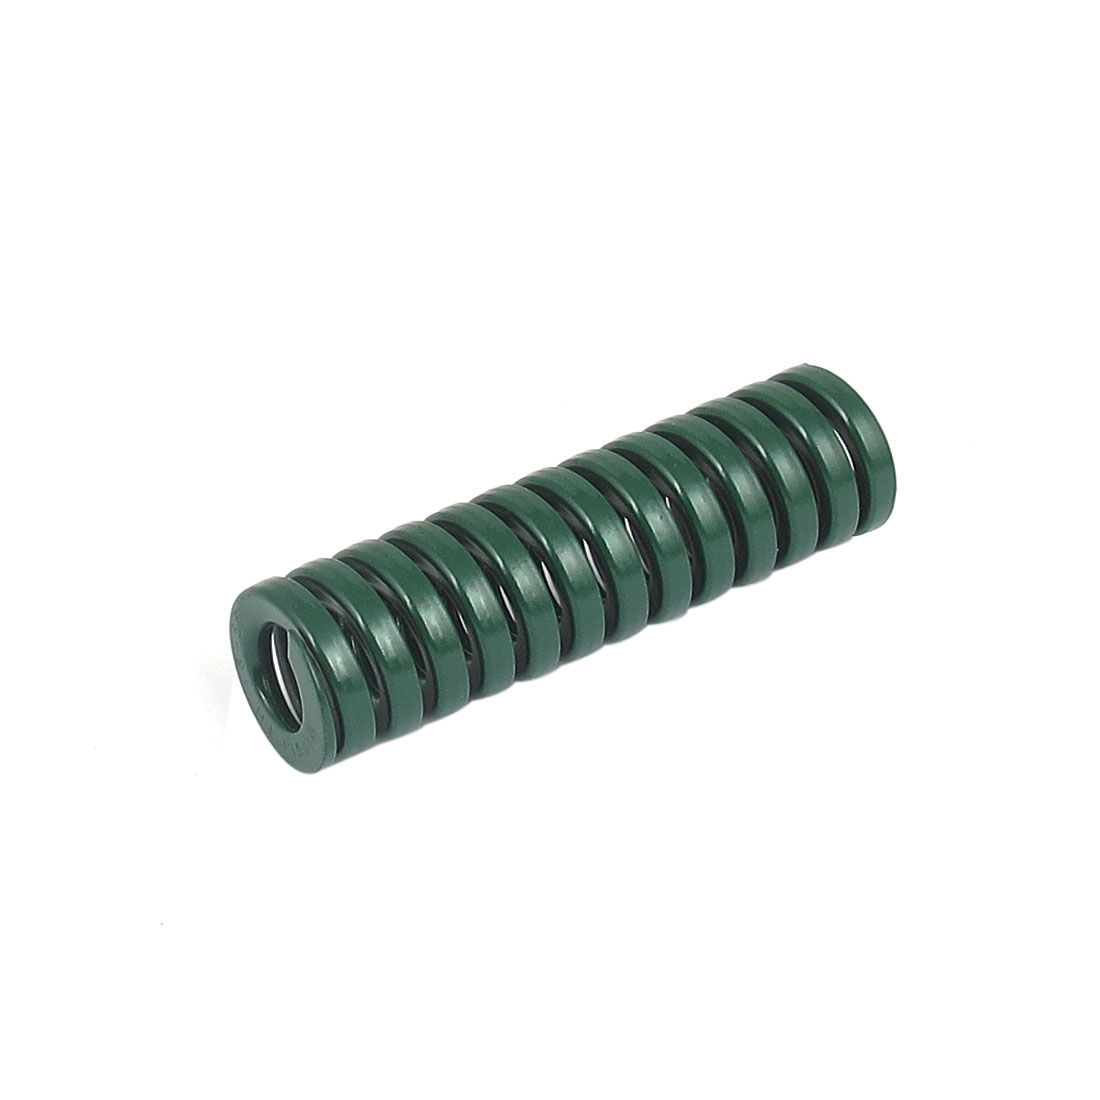 16mmx55mm Chromium Alloy Steel Heavy Load Die Spring Green